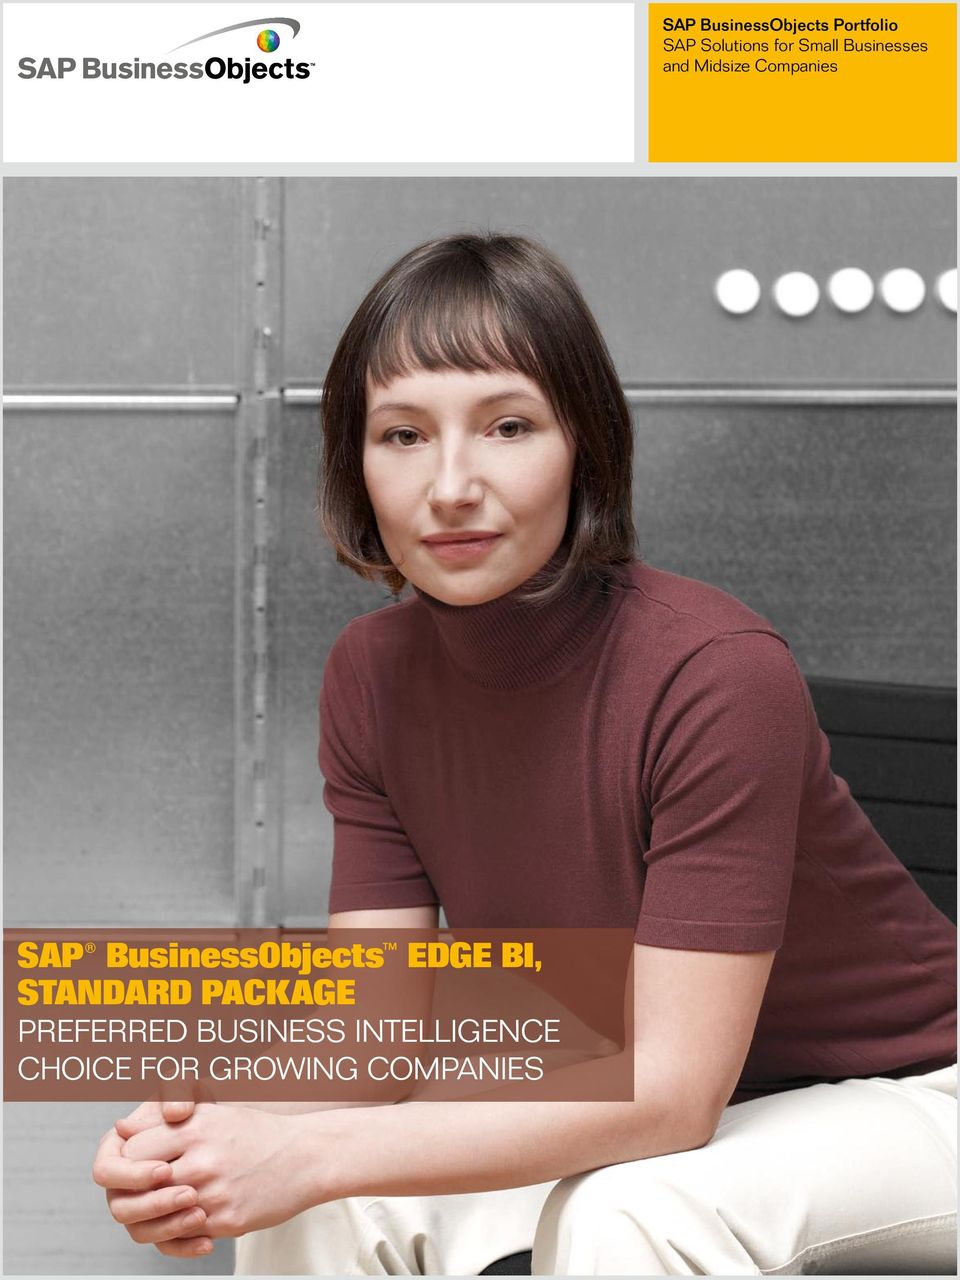 Growing Companies SAP BusinessObjects Portfolio